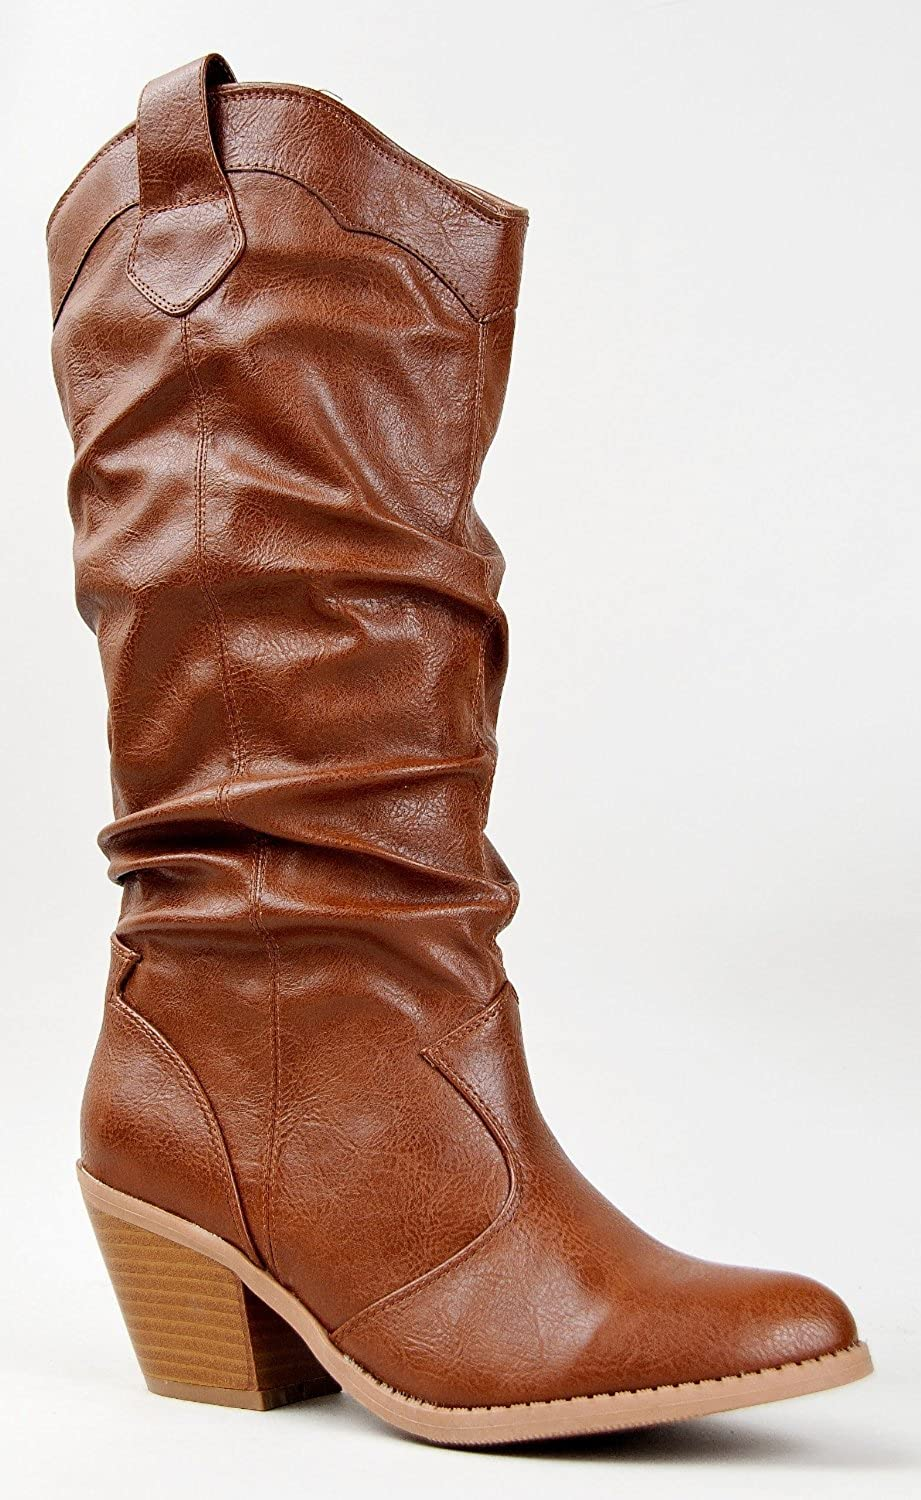 Qupid Muse-01 Western Cowboy Inspired Slouchy Mid Calf Knee High Stacked Heel